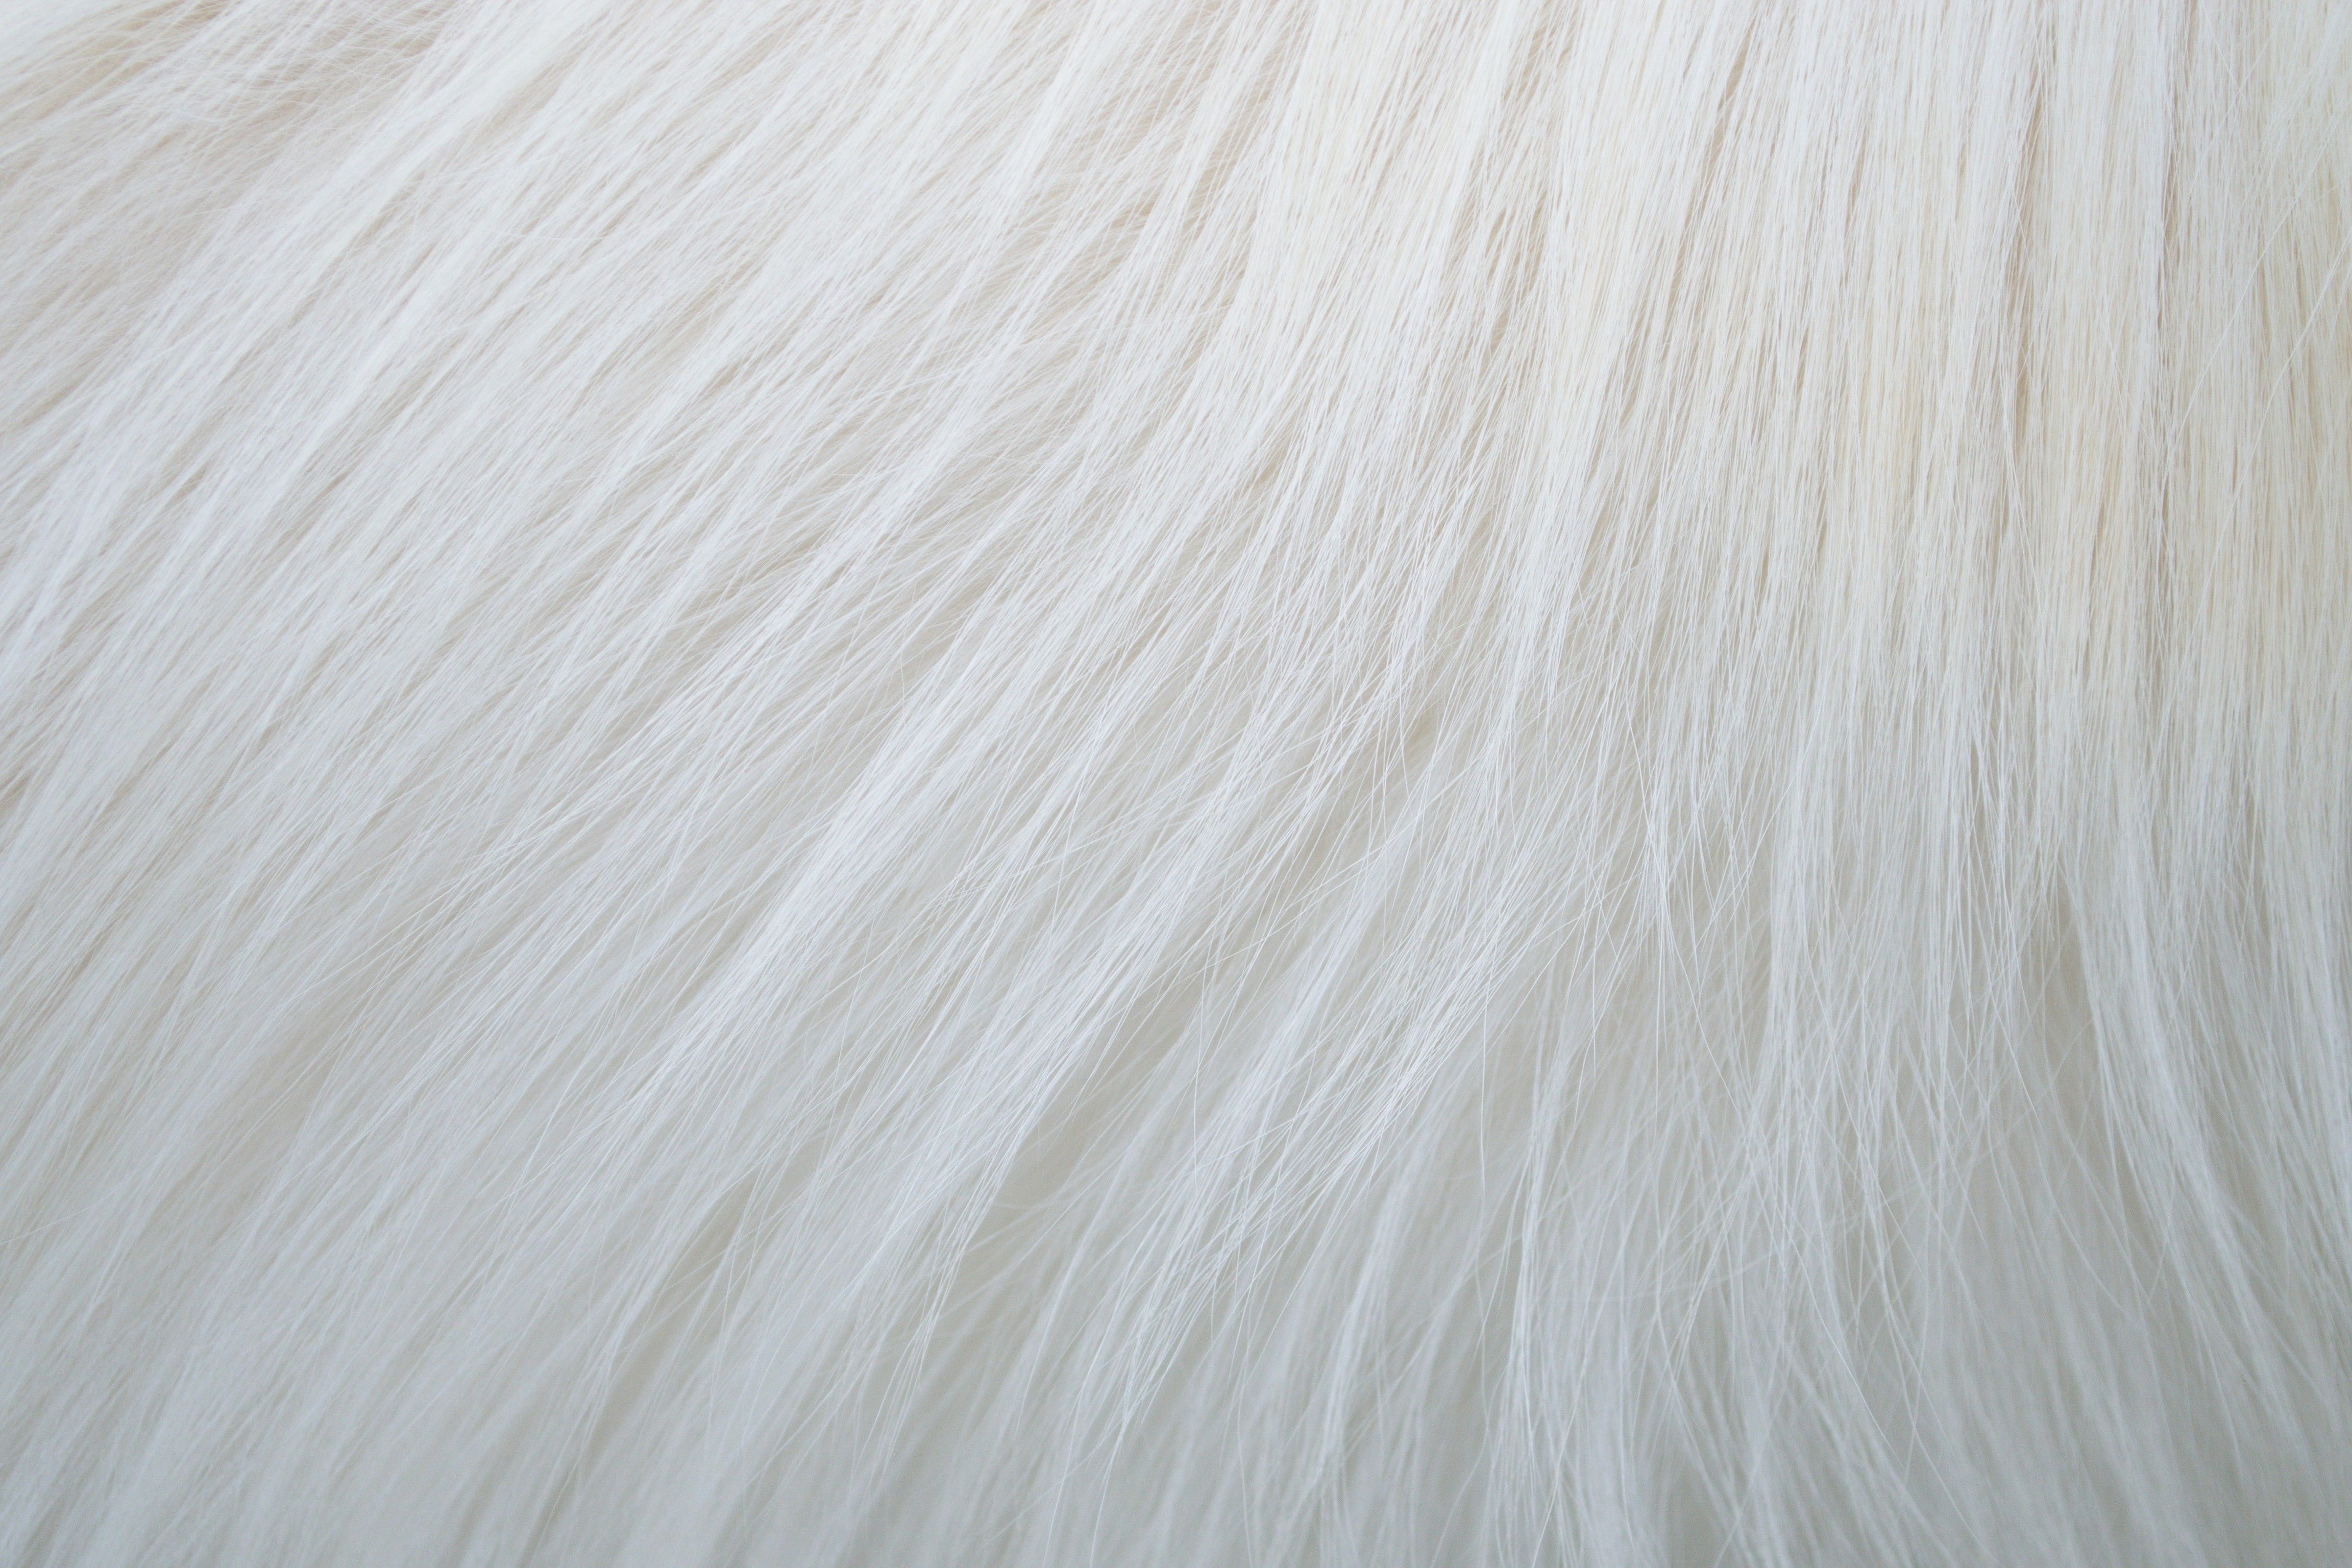 Fur texture clipart graphic free light texture - Google Search | Texture in 2019 | Texture drawing ... graphic free